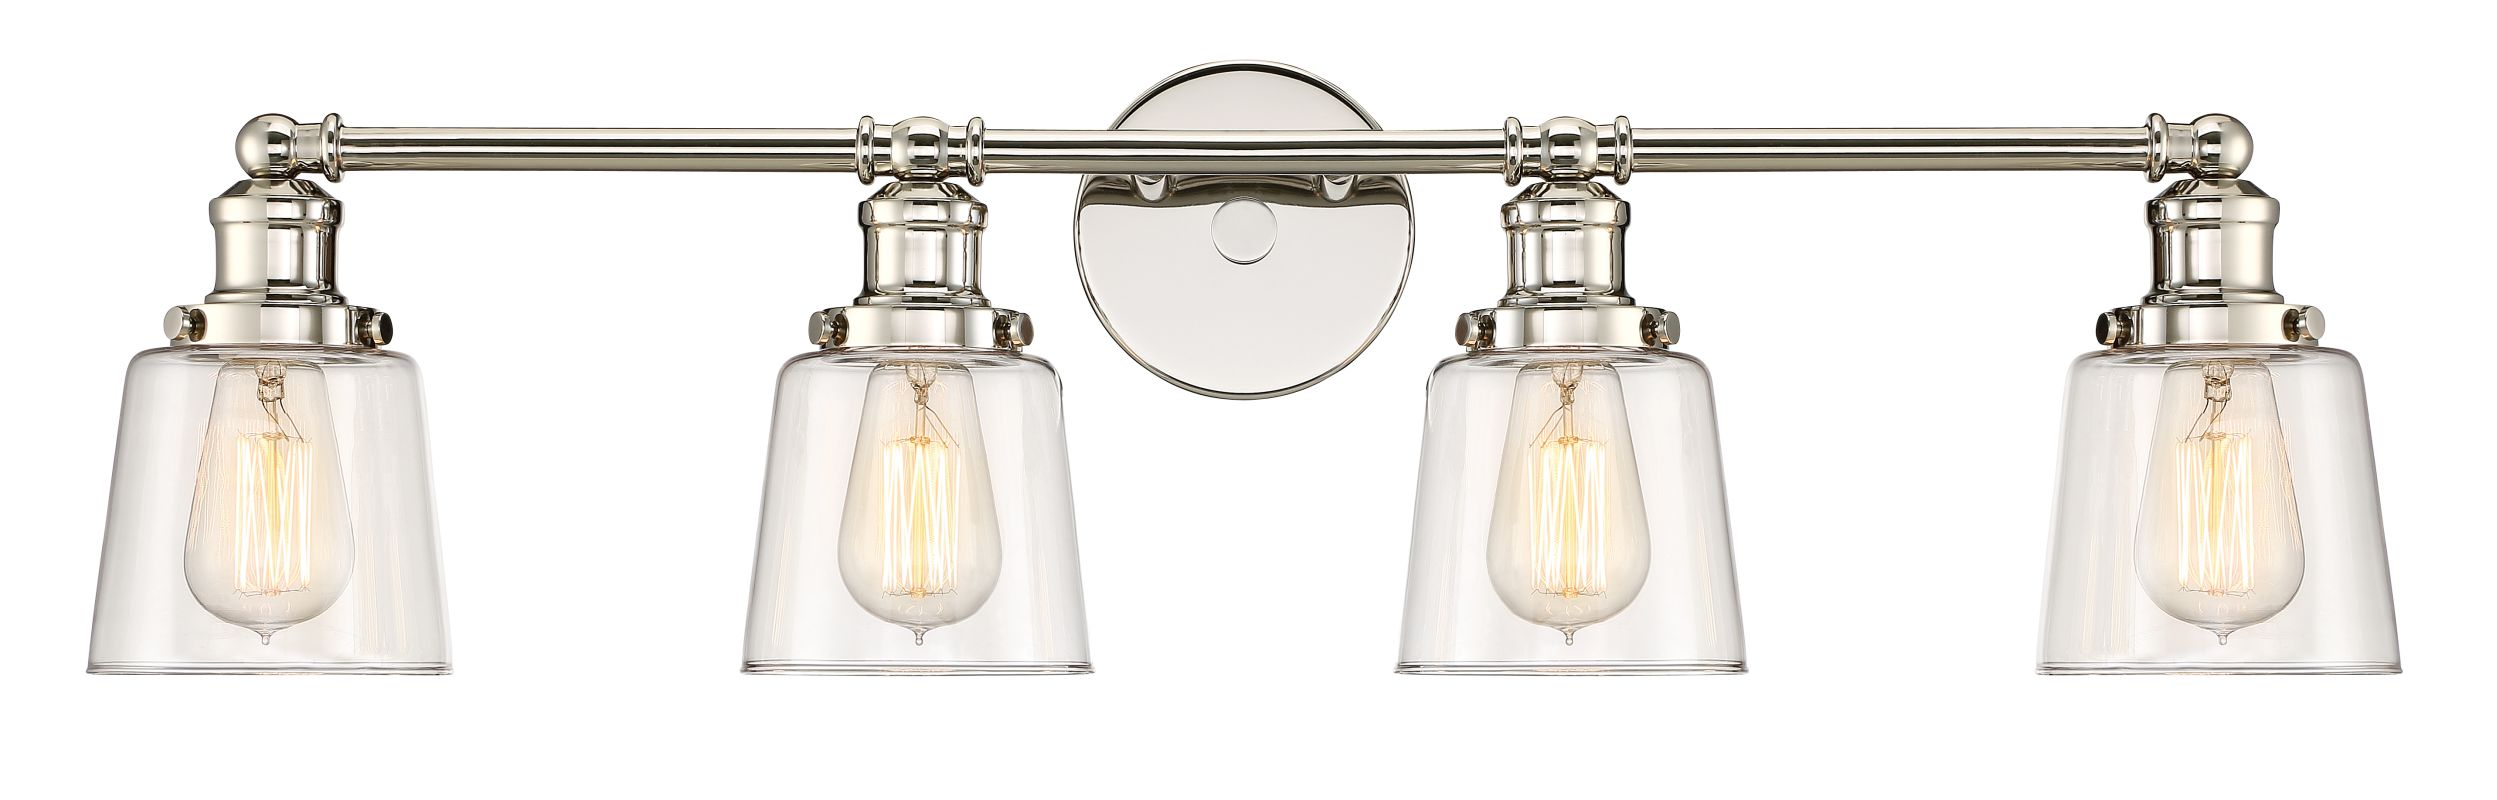 "Quoizel UNI8604 Union 4 Light 32"" Wide Bathroom Vanity Light Polished Sale $239.99 ITEM: bci3006857 ID#:UNI8604PK UPC: 611728271360 :"